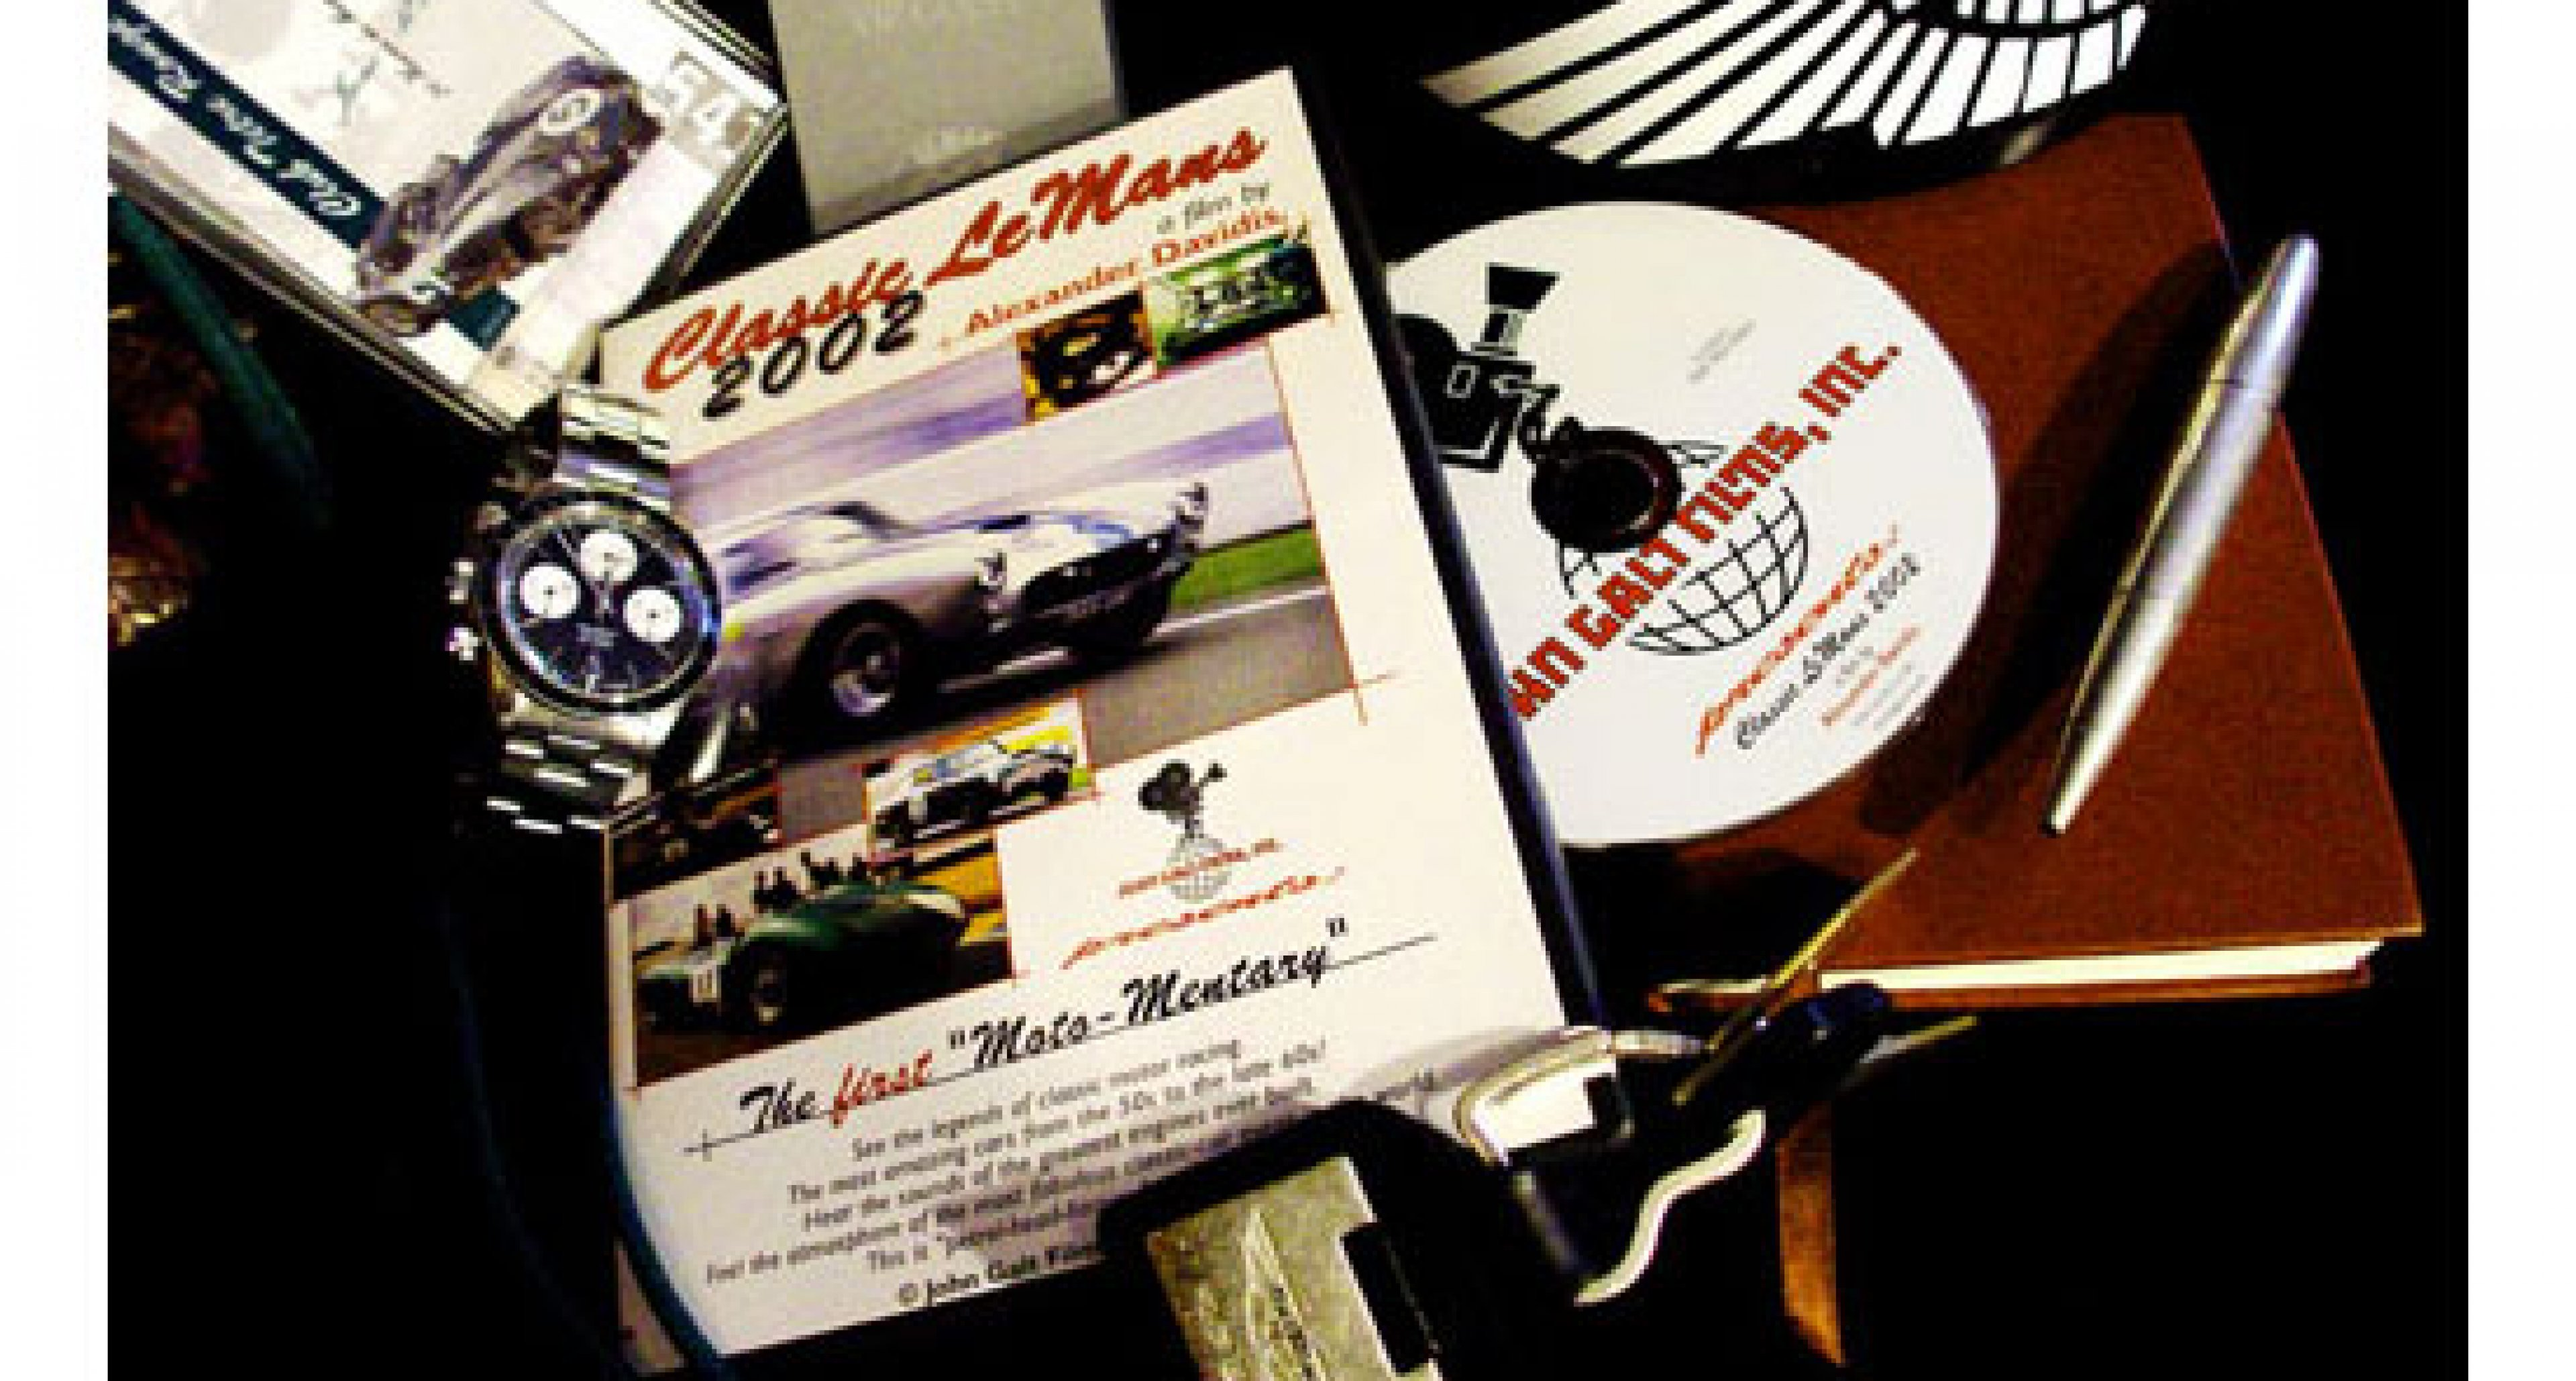 Classic Le Mans 2002 - the DVD. A personal experience from film maker Alexander Davidis